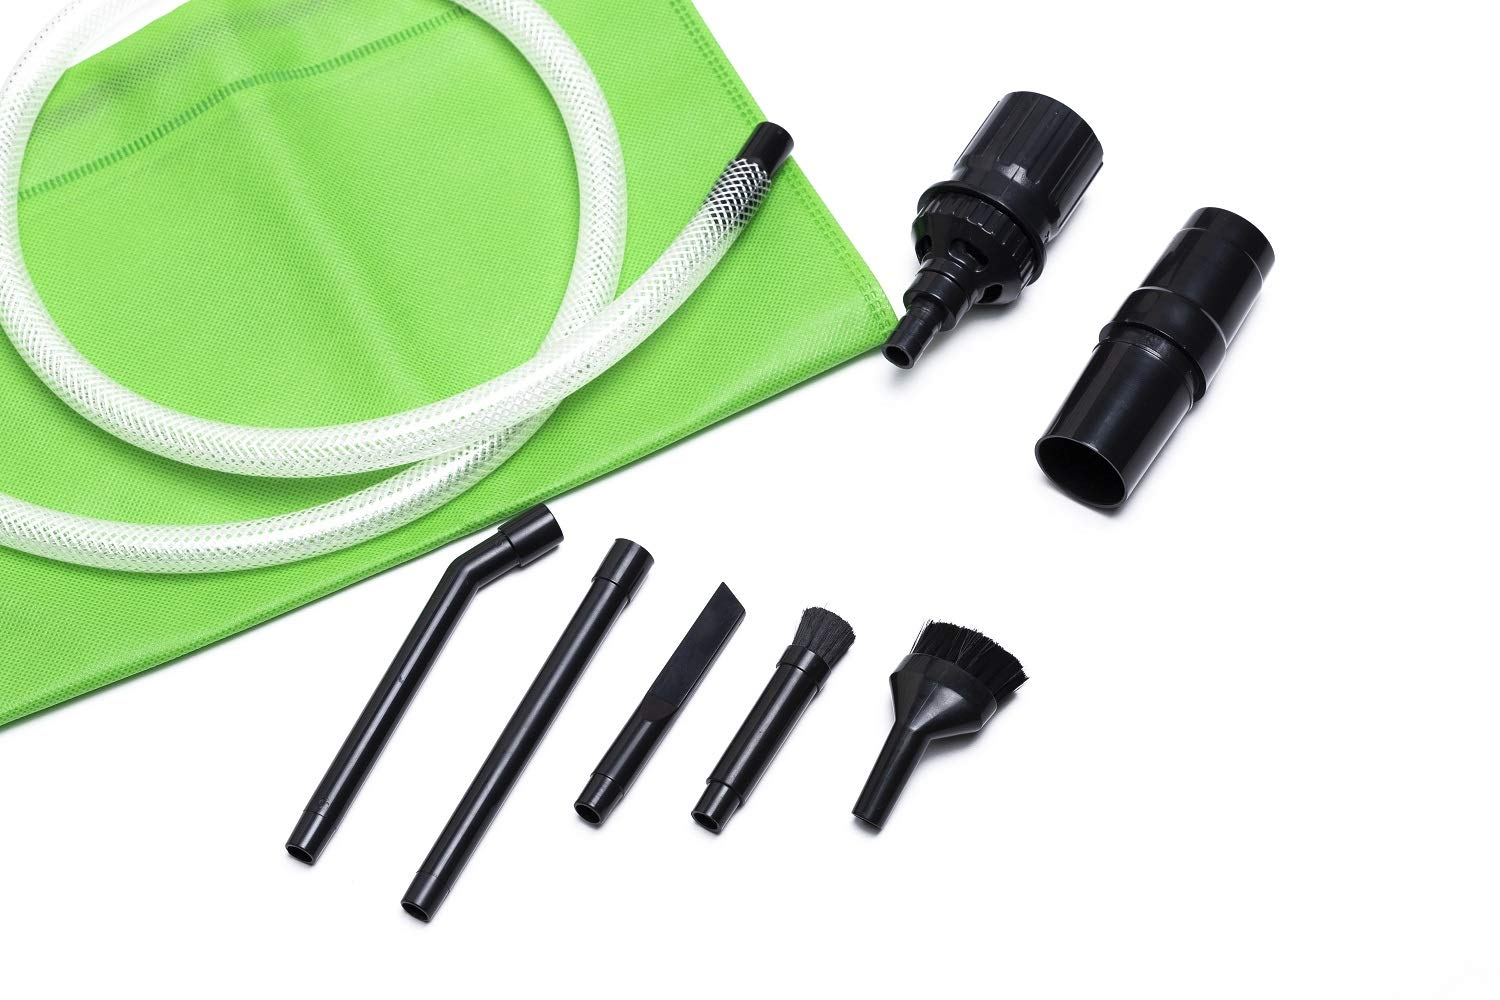 Green Label Micro Vacuum Attachment Kit - 7 Piece. Fits Most Vacuum Cleaner hoses with 1.25-1.38 inch Diameter (Round Friction Fit Type Wands). Green Storage Bag.